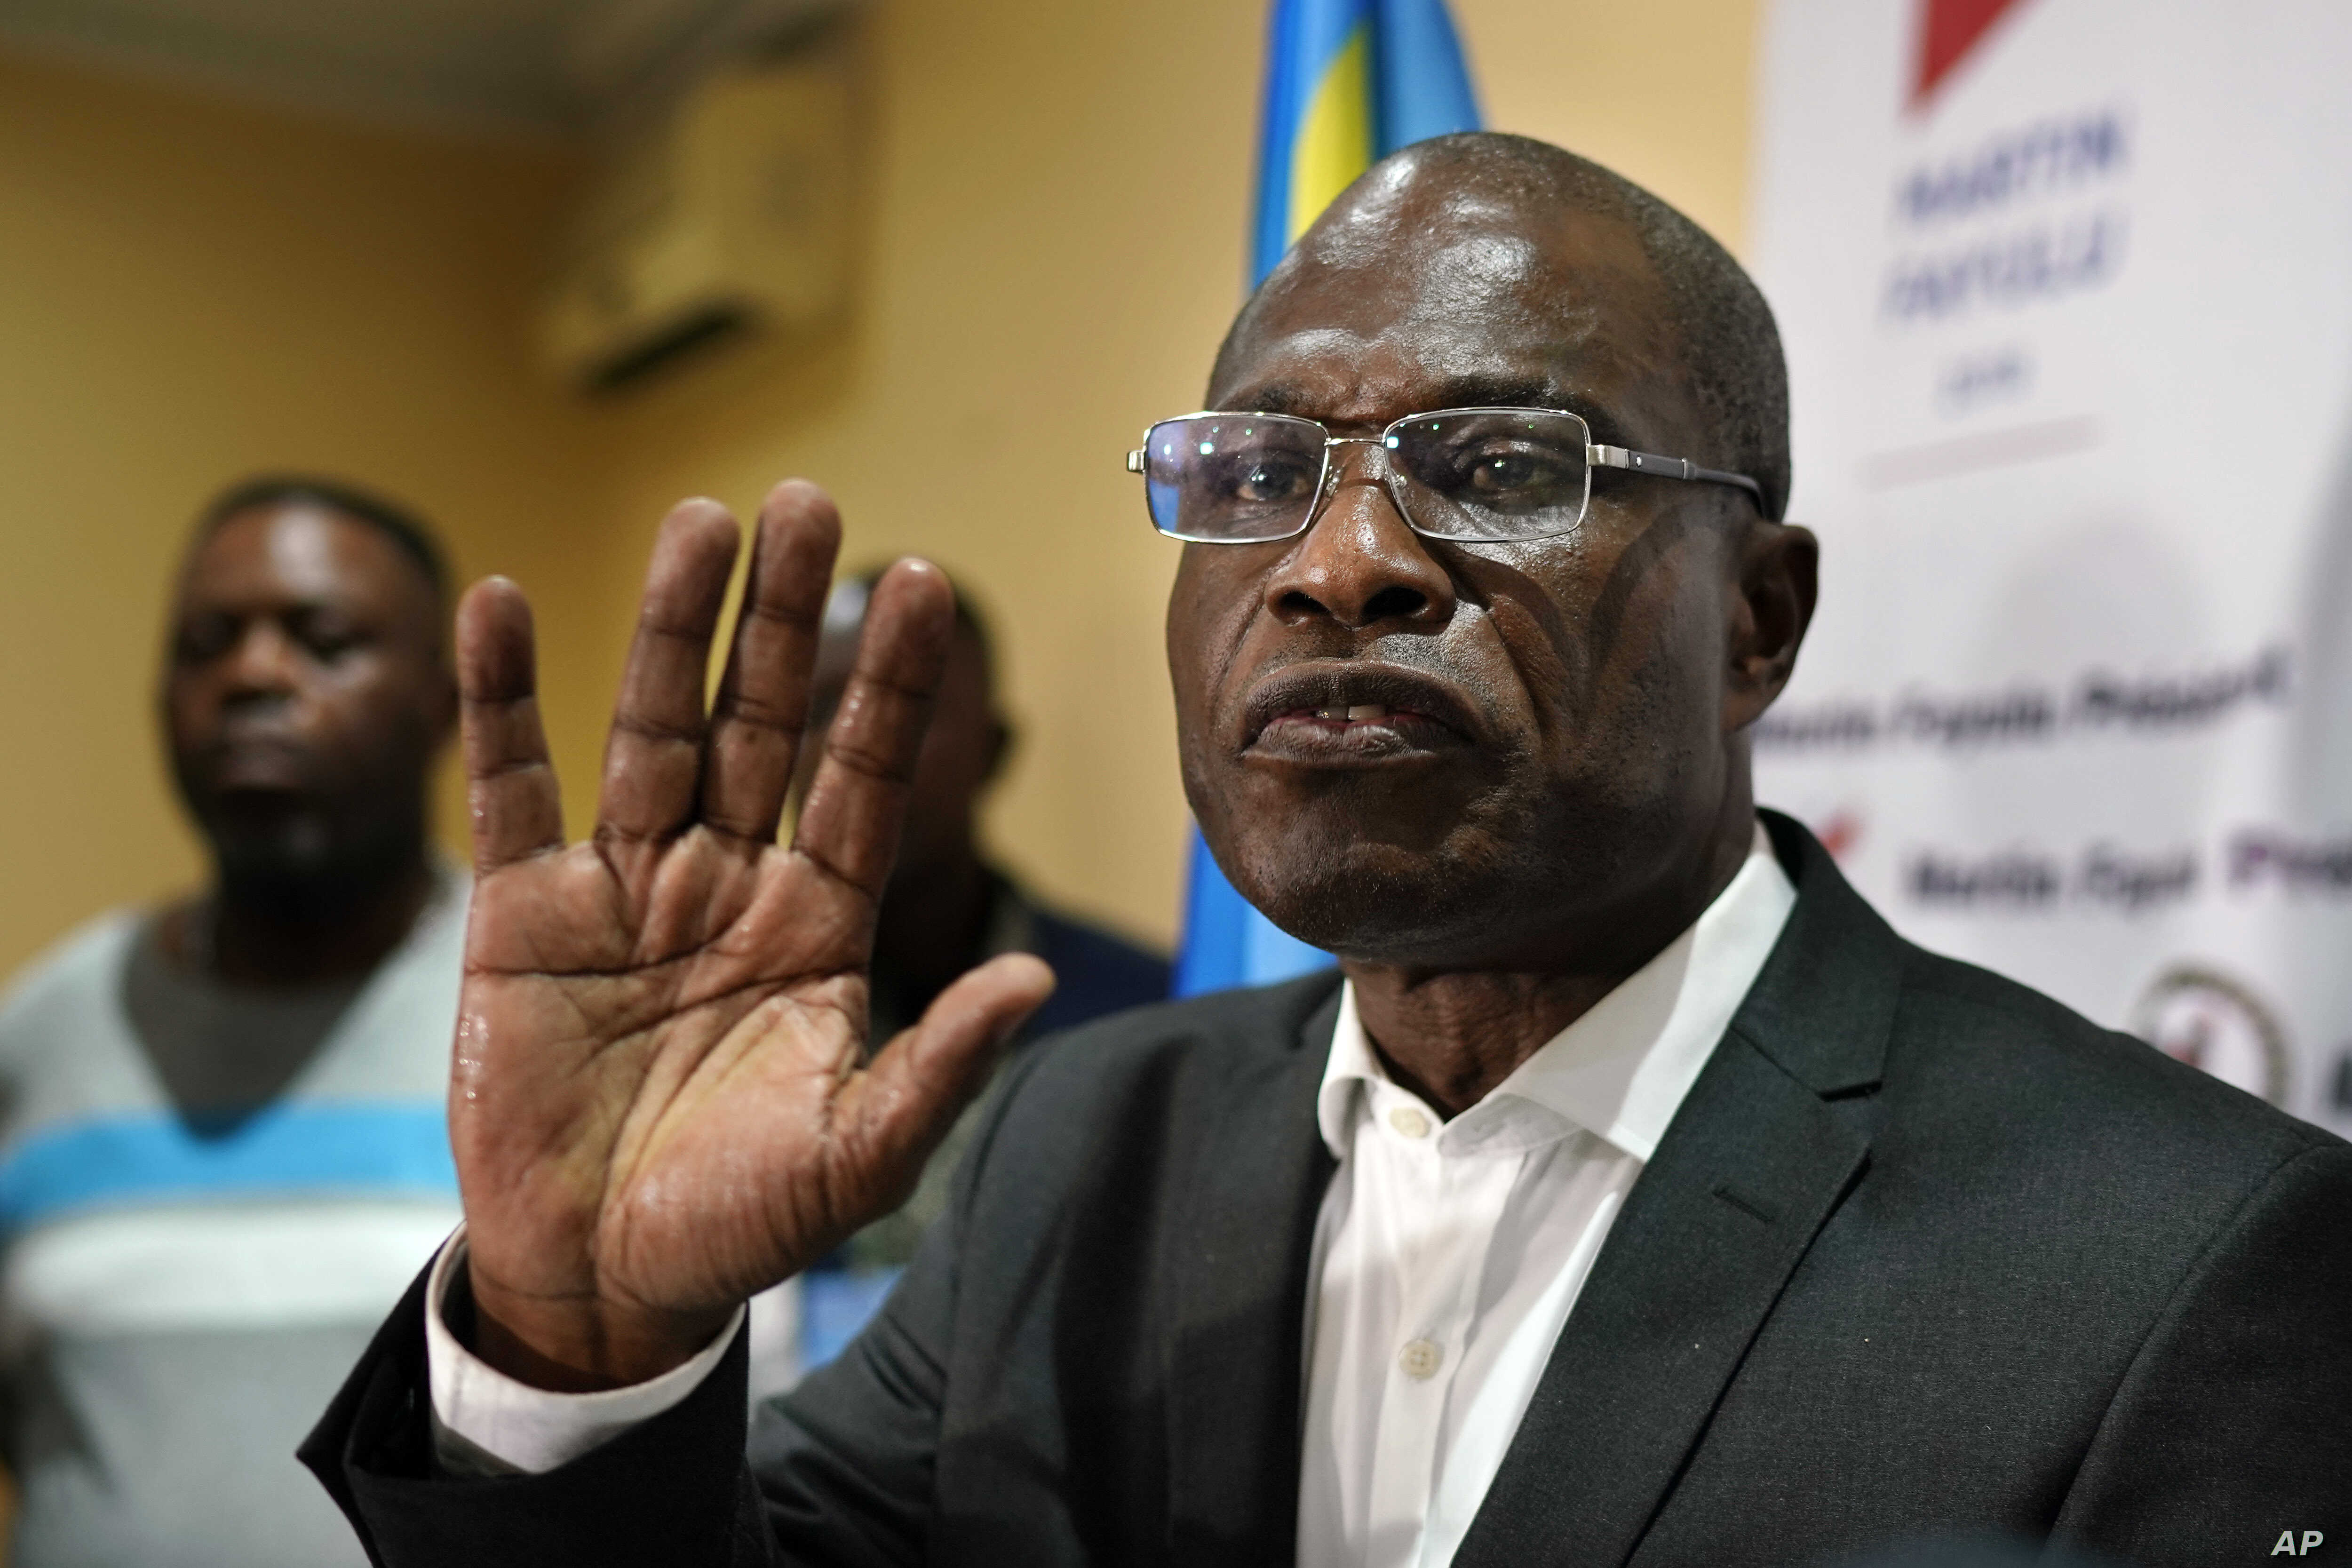 Opposition candidate Martin Fayulu speaks to the press at his headquarters in Kinshasa, Congo, Jan. 10, 2019. Fayulu, who came second in the presidential poll behind Felix Tshisekedi, called the results fraudulent.